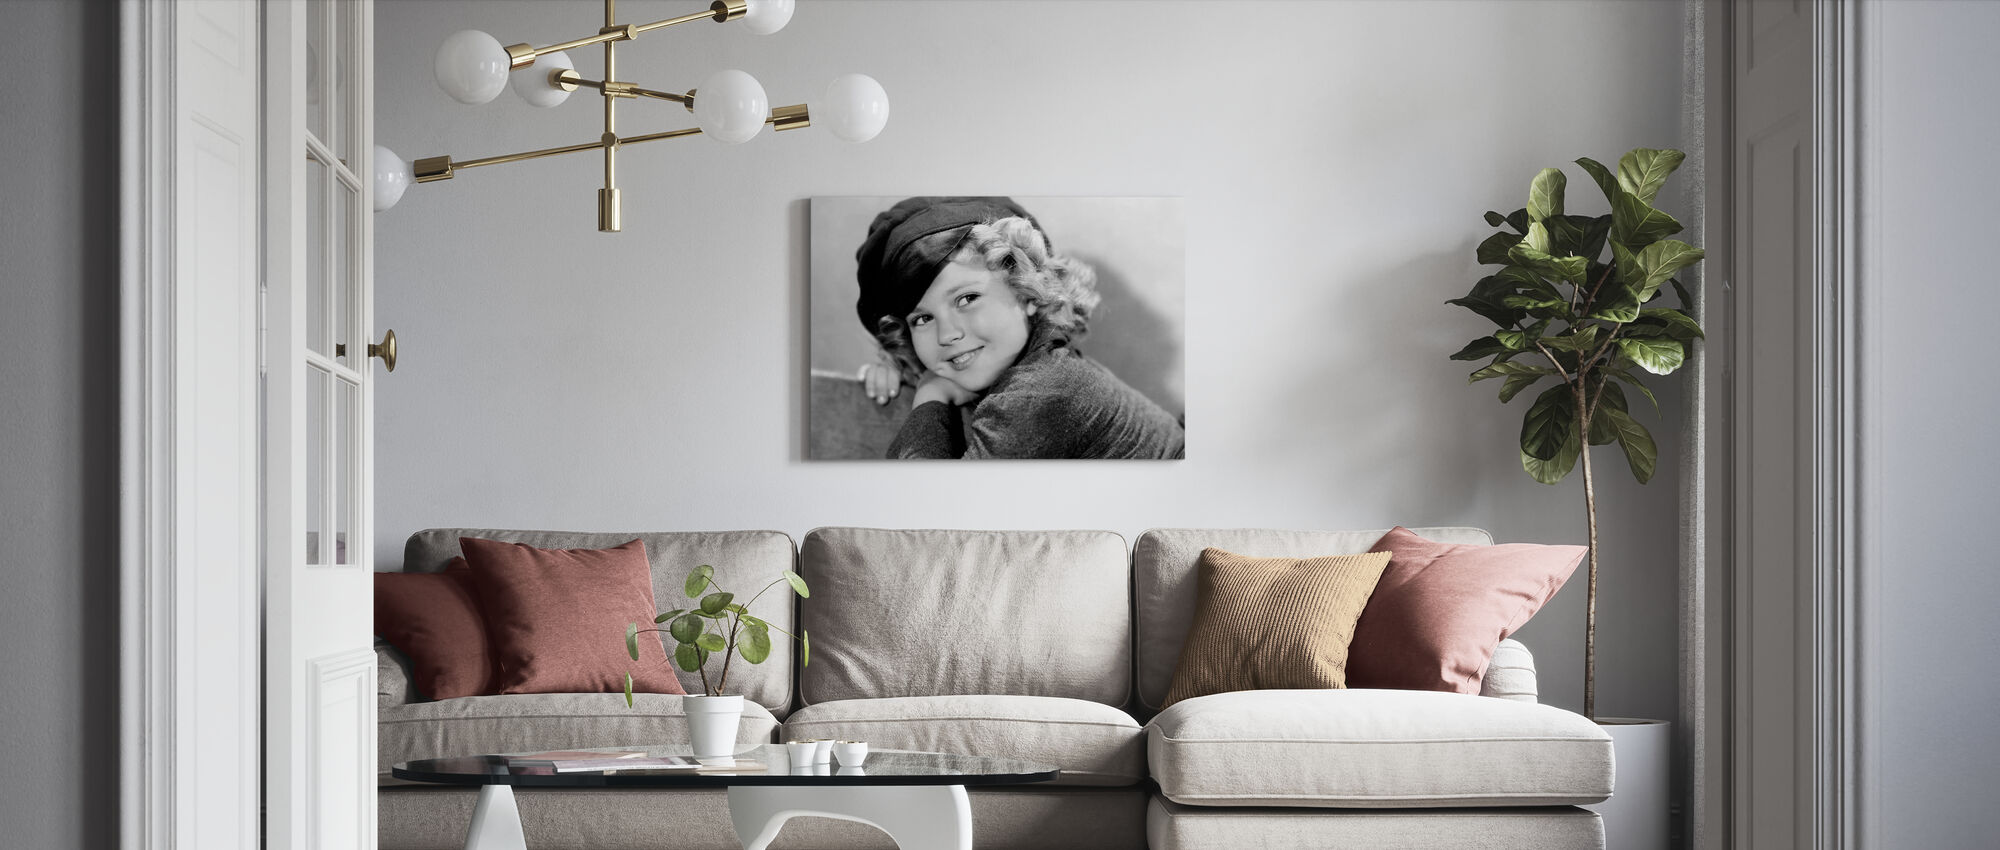 Dimples - Canvas print - Living Room